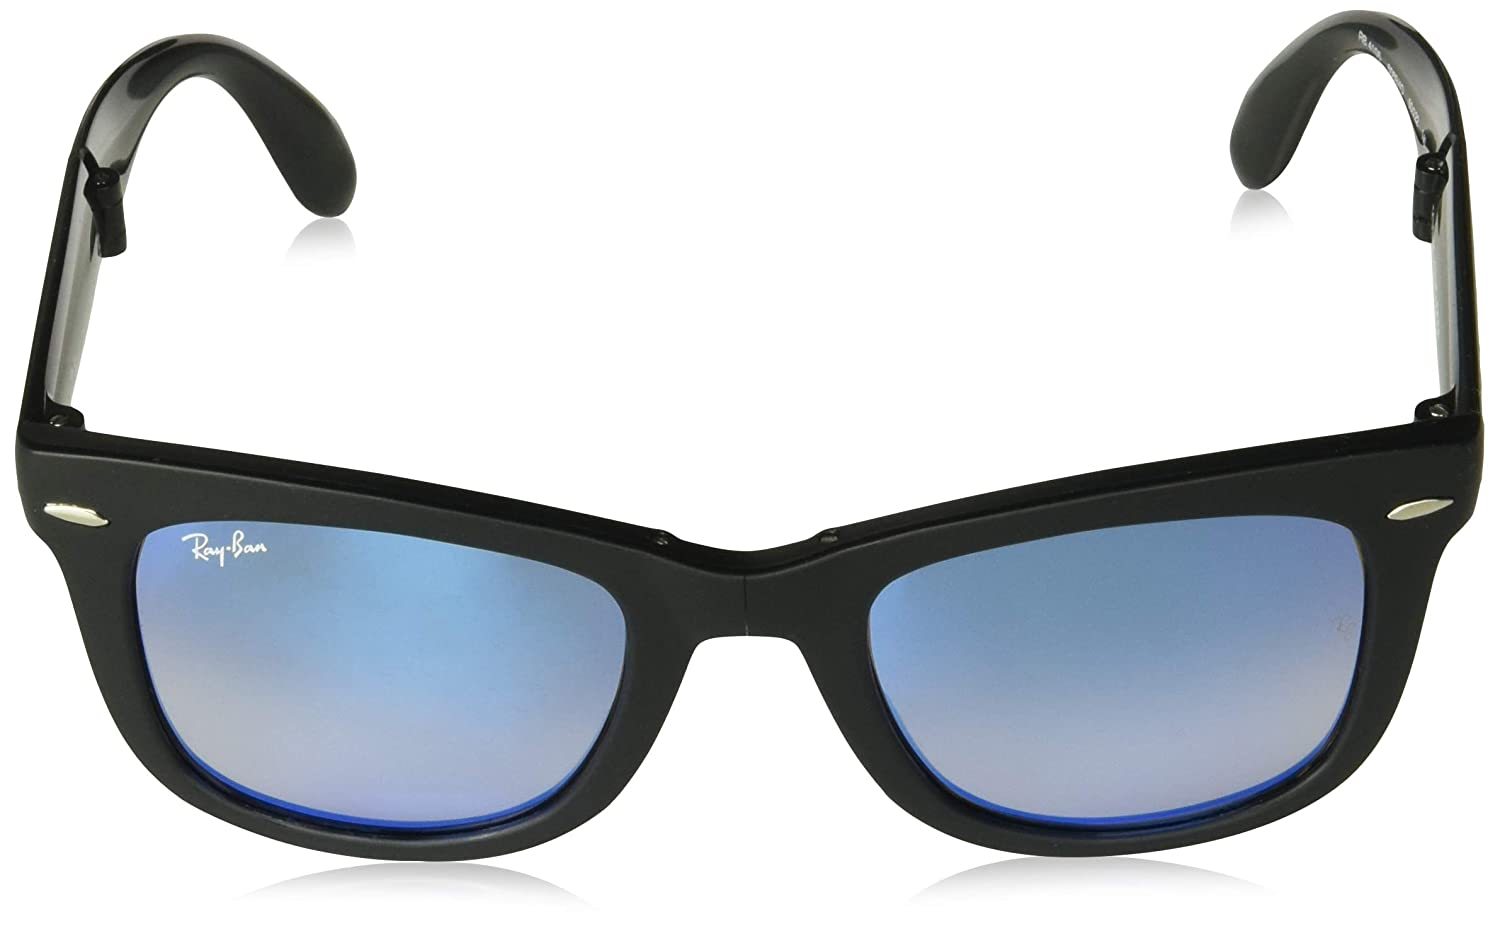 1c0b937b52e92 Amazon.com  Ray-Ban Men s Folding Wayfarer Sunglasses